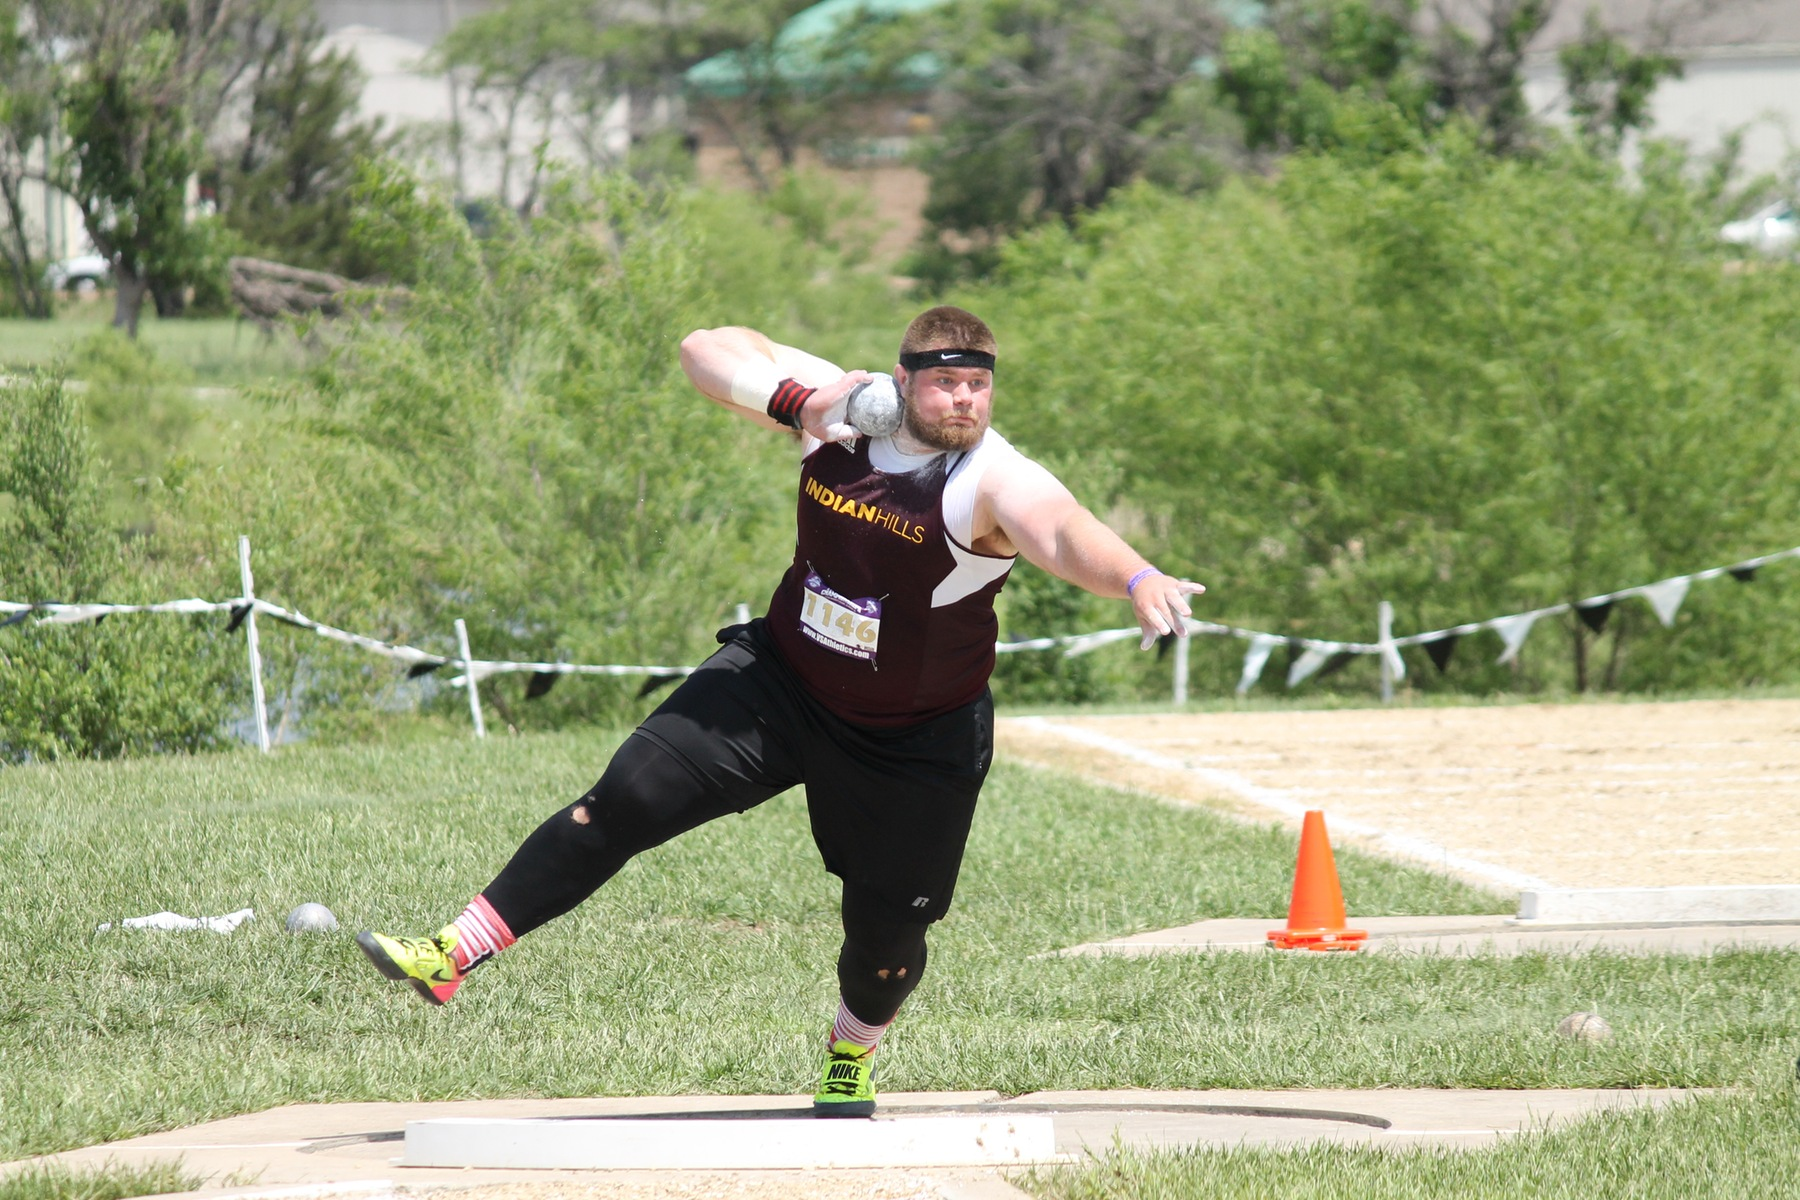 Nathan Winters finished 4th in the shot put at the 2018 NJCAA Outdoor Track & Field National meet.